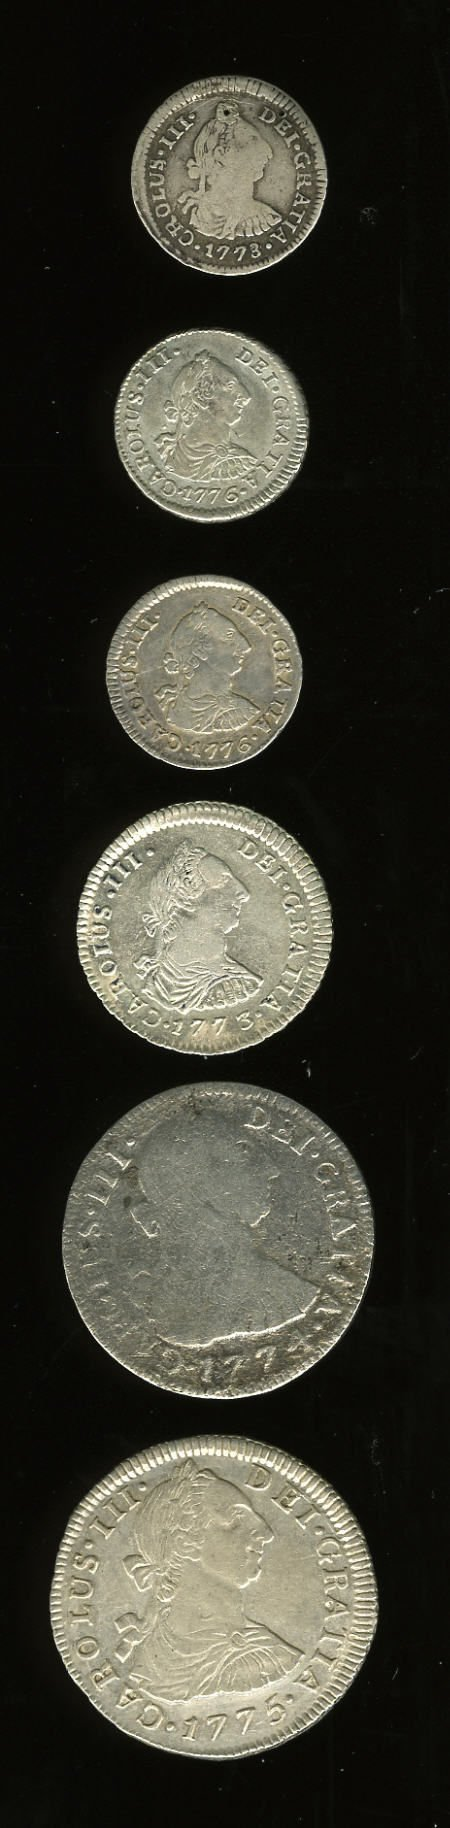 50489: Bolivia Carlos III Bust Types Selection, KM51